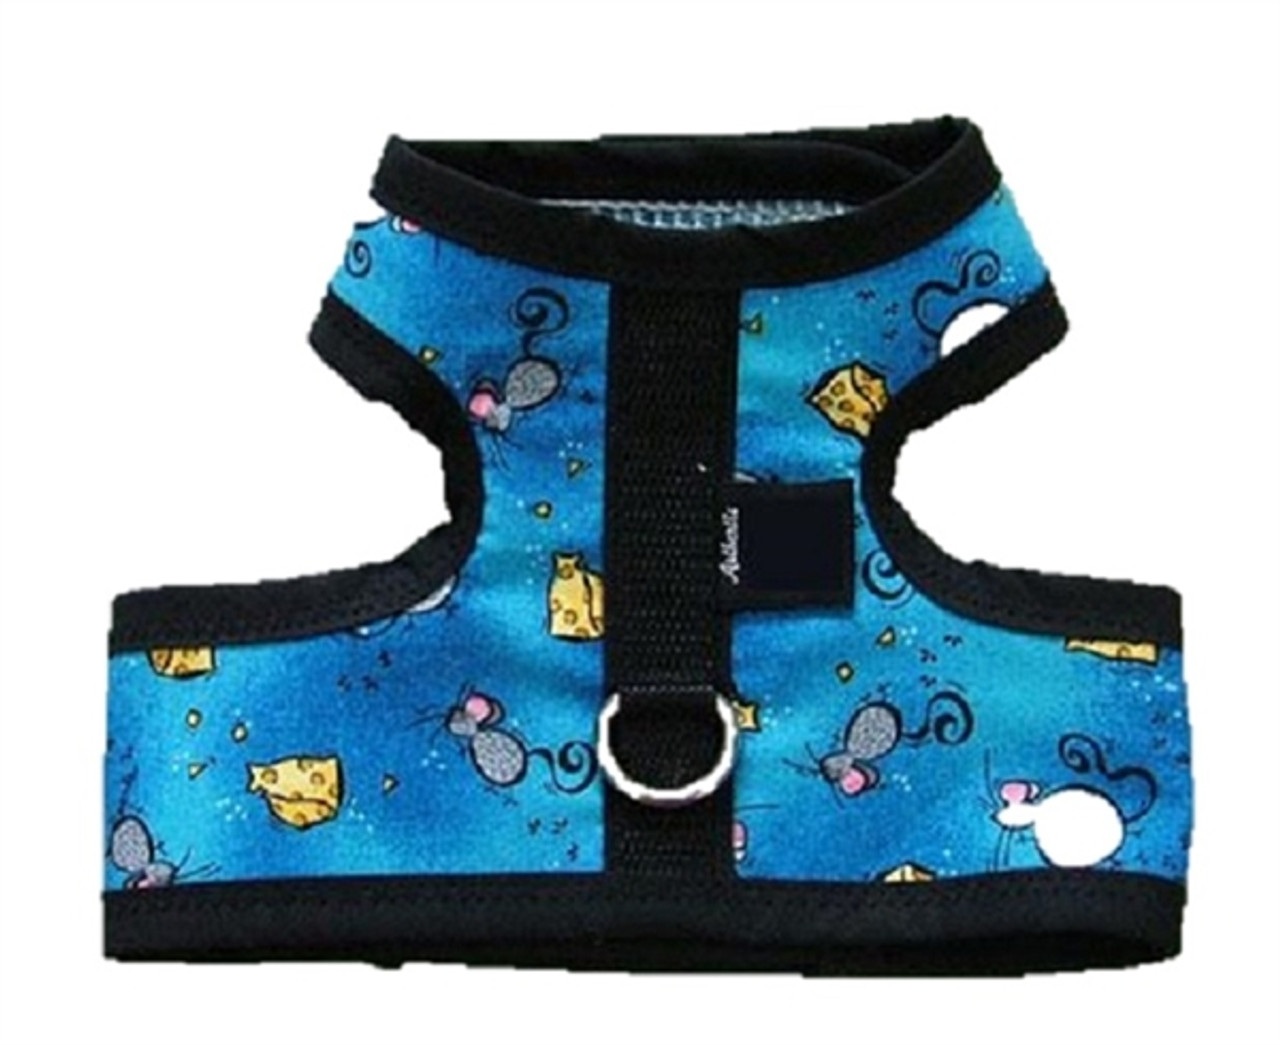 Designer Fabric Cat Harness